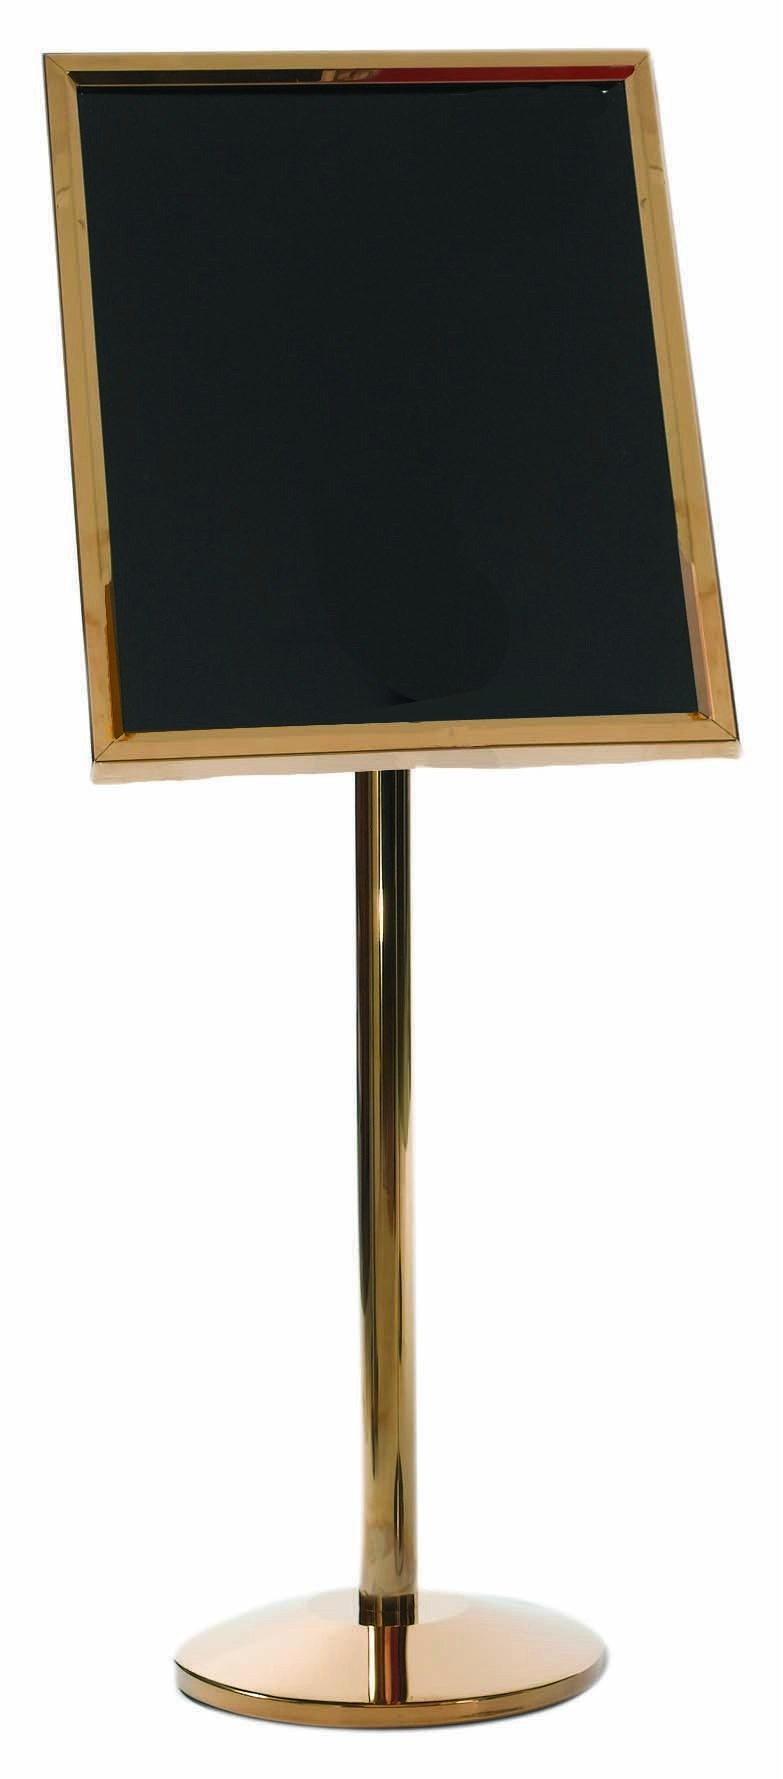 Aarco Products P-7B Single Pedestal Broadcaster- Brass Frame with Markerboard